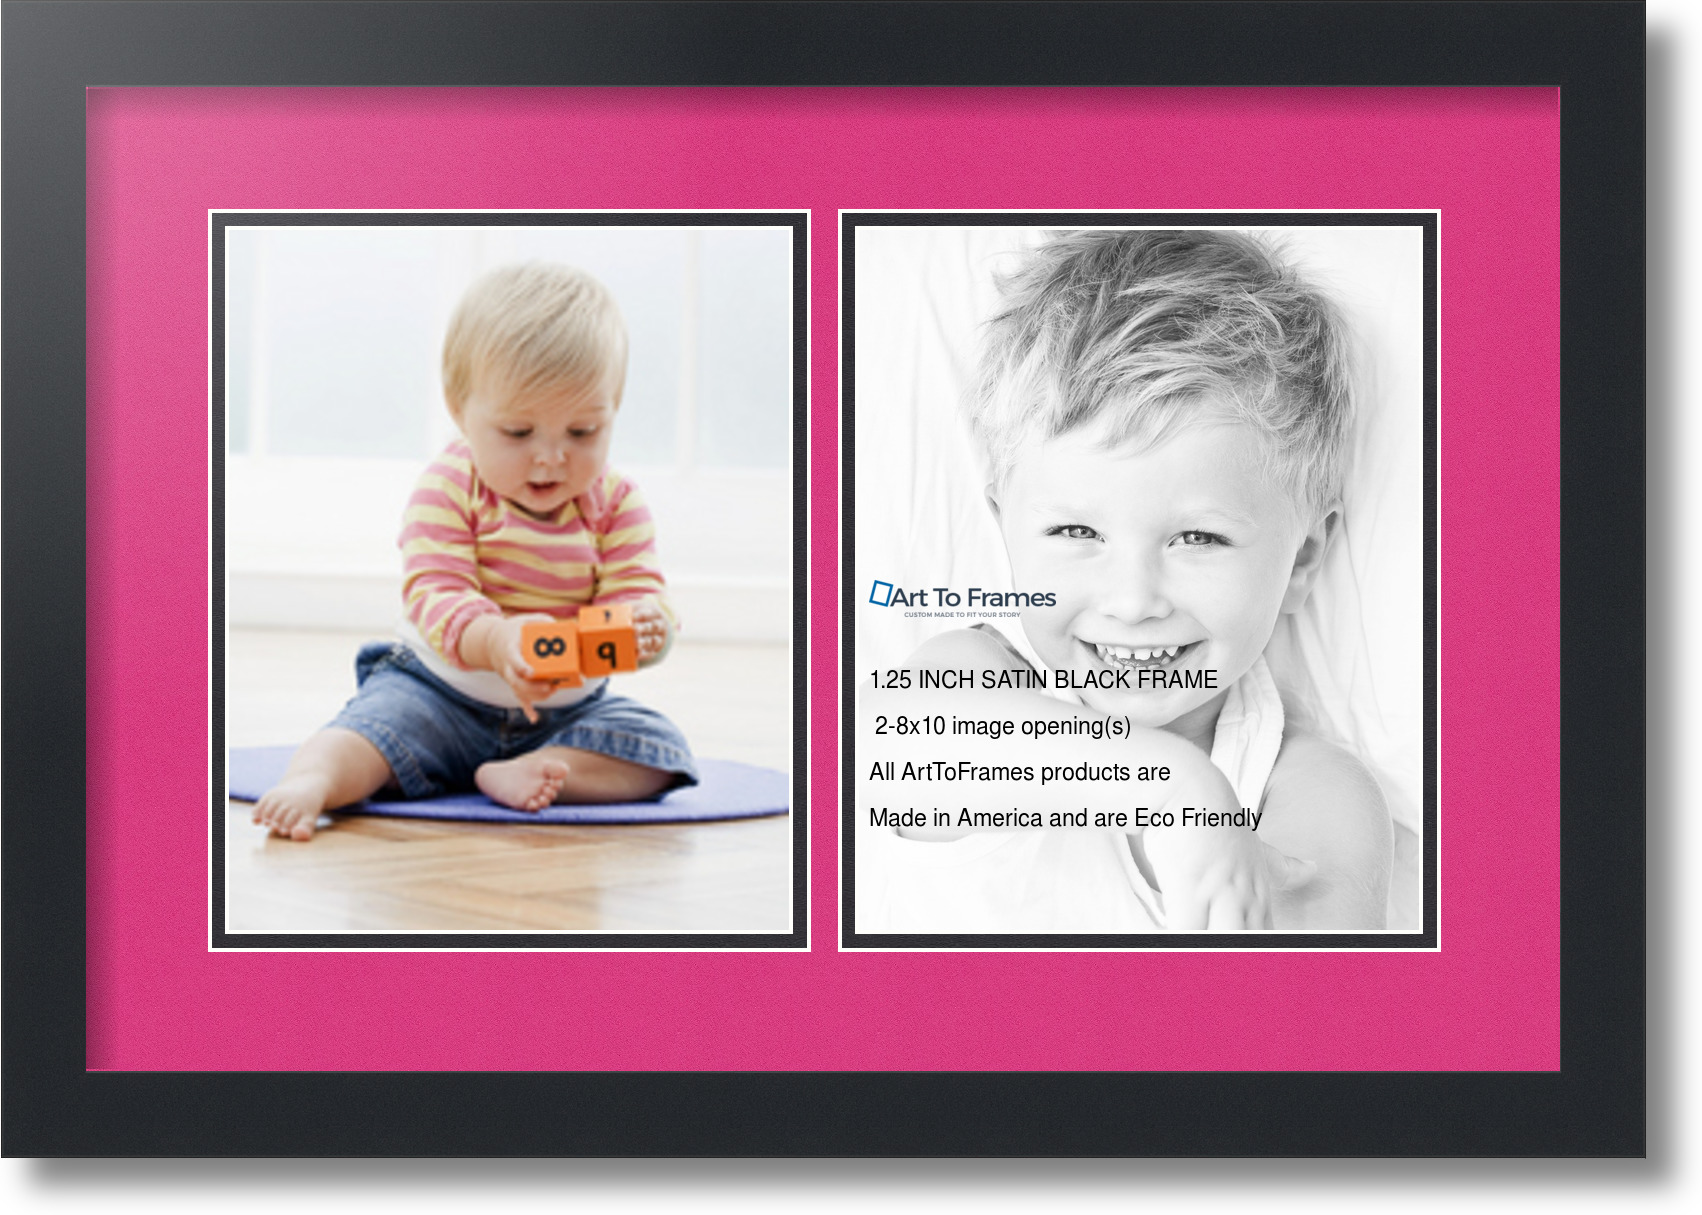 Arttoframes collage mat picture photo frame 2 8x10 openings in arttoframes collage mat picture photo frame 2 8x10 jeuxipadfo Image collections